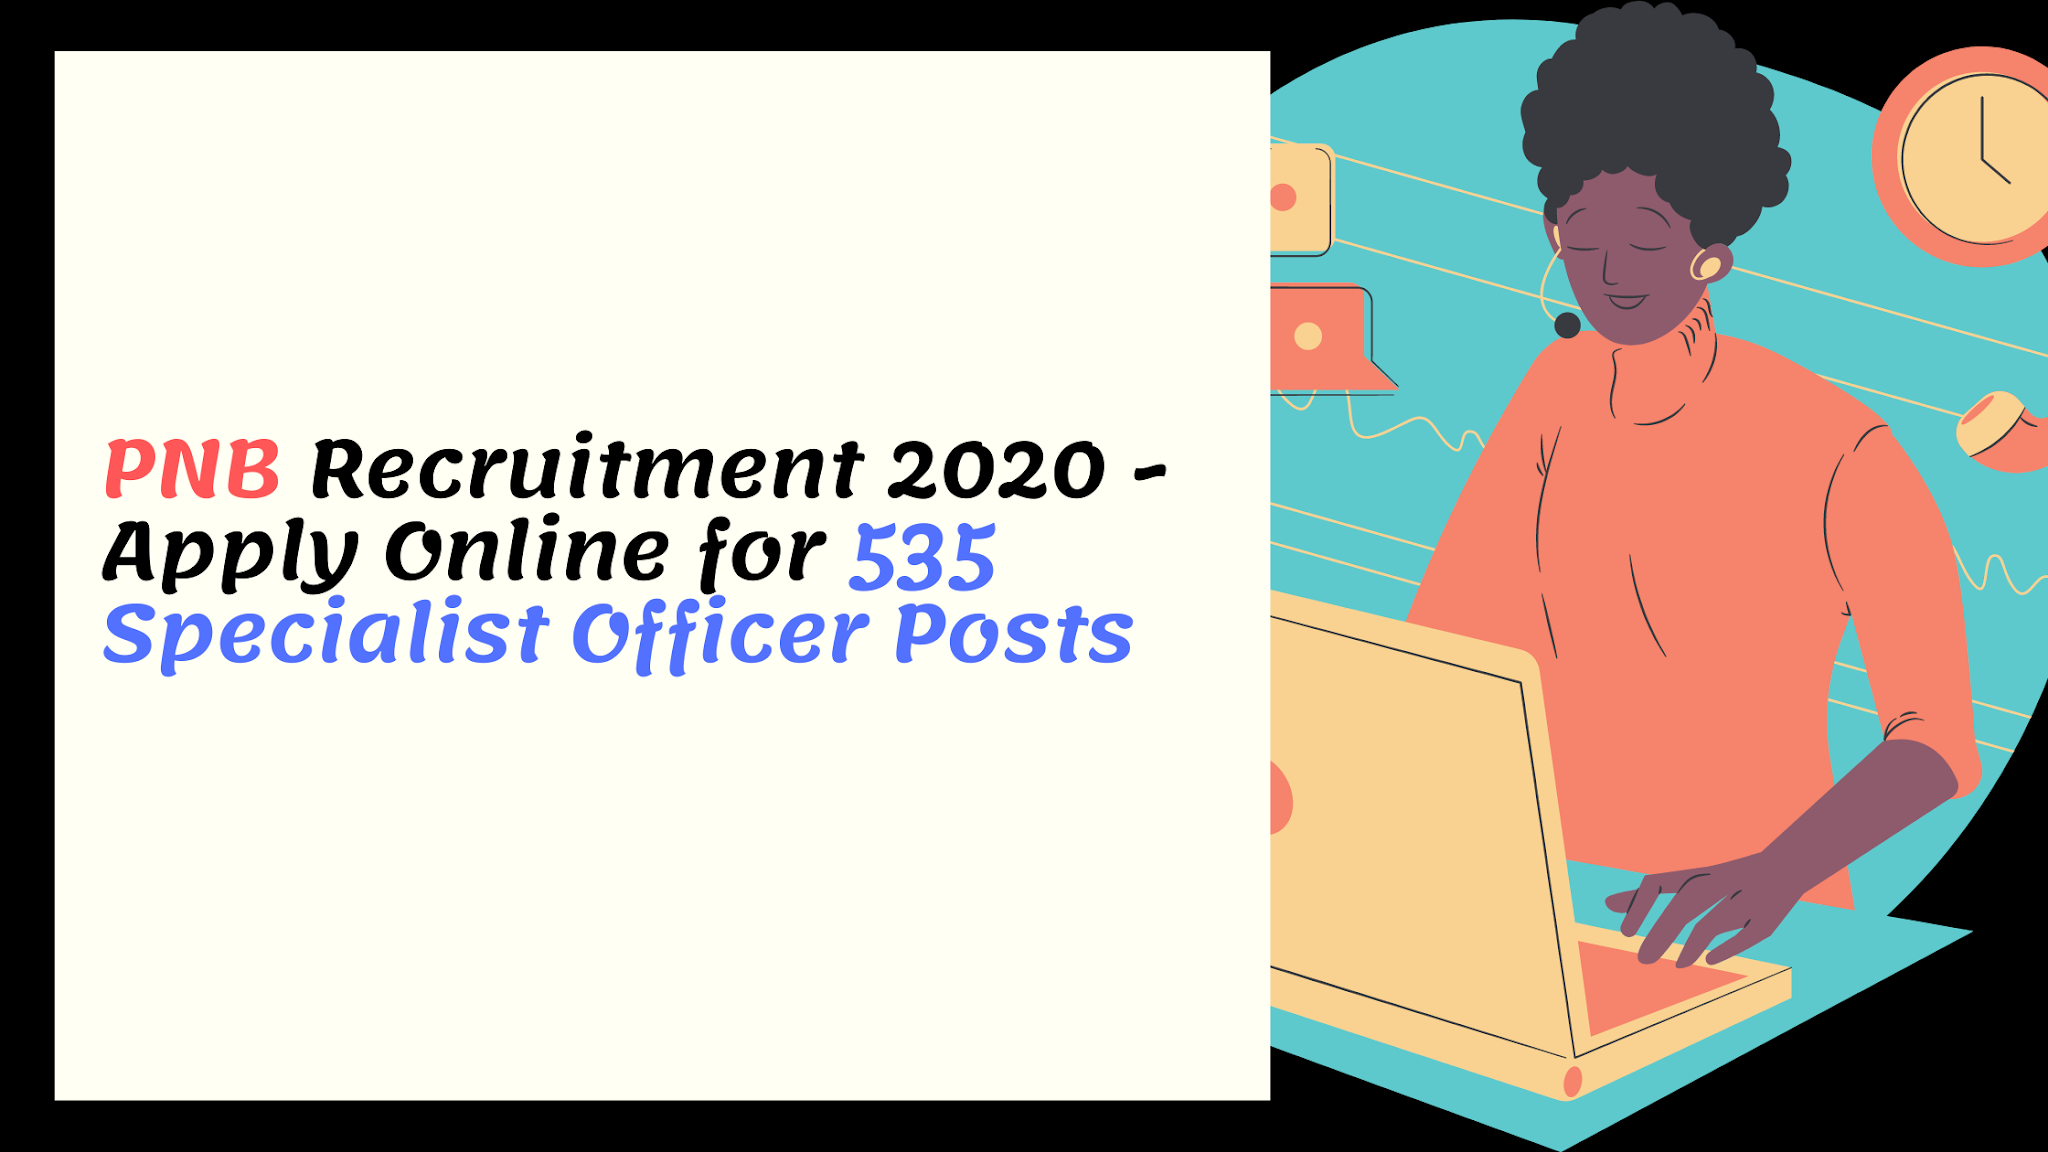 PNB Recruitment 2020 - Apply Online for 535 Specialist Officer Posts